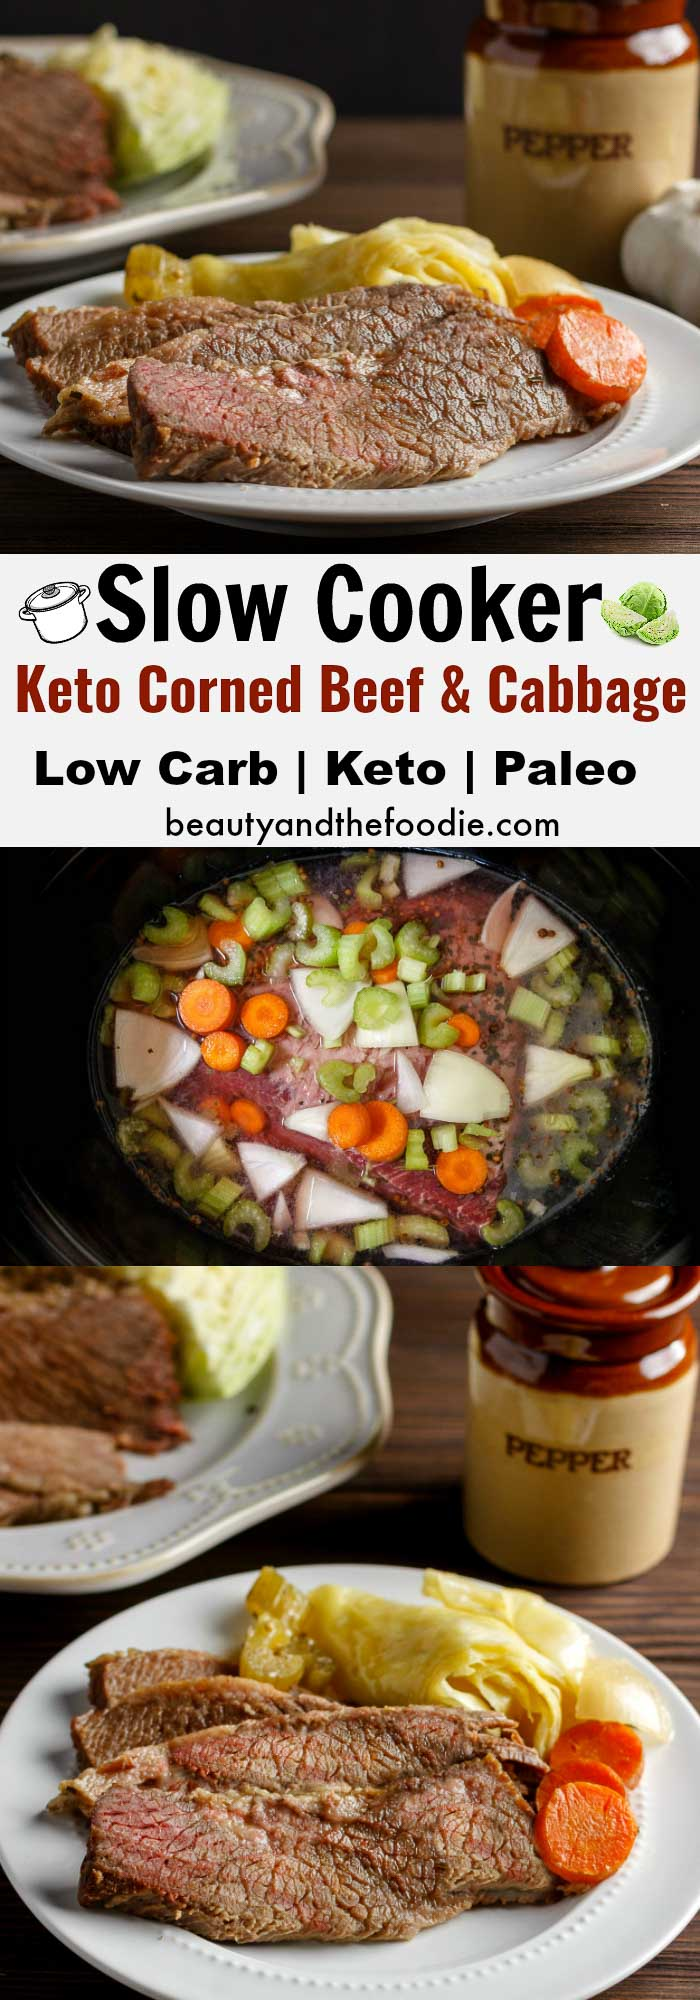 Slow Cooker Corned Beef Cabbage- low Carb & Paleo